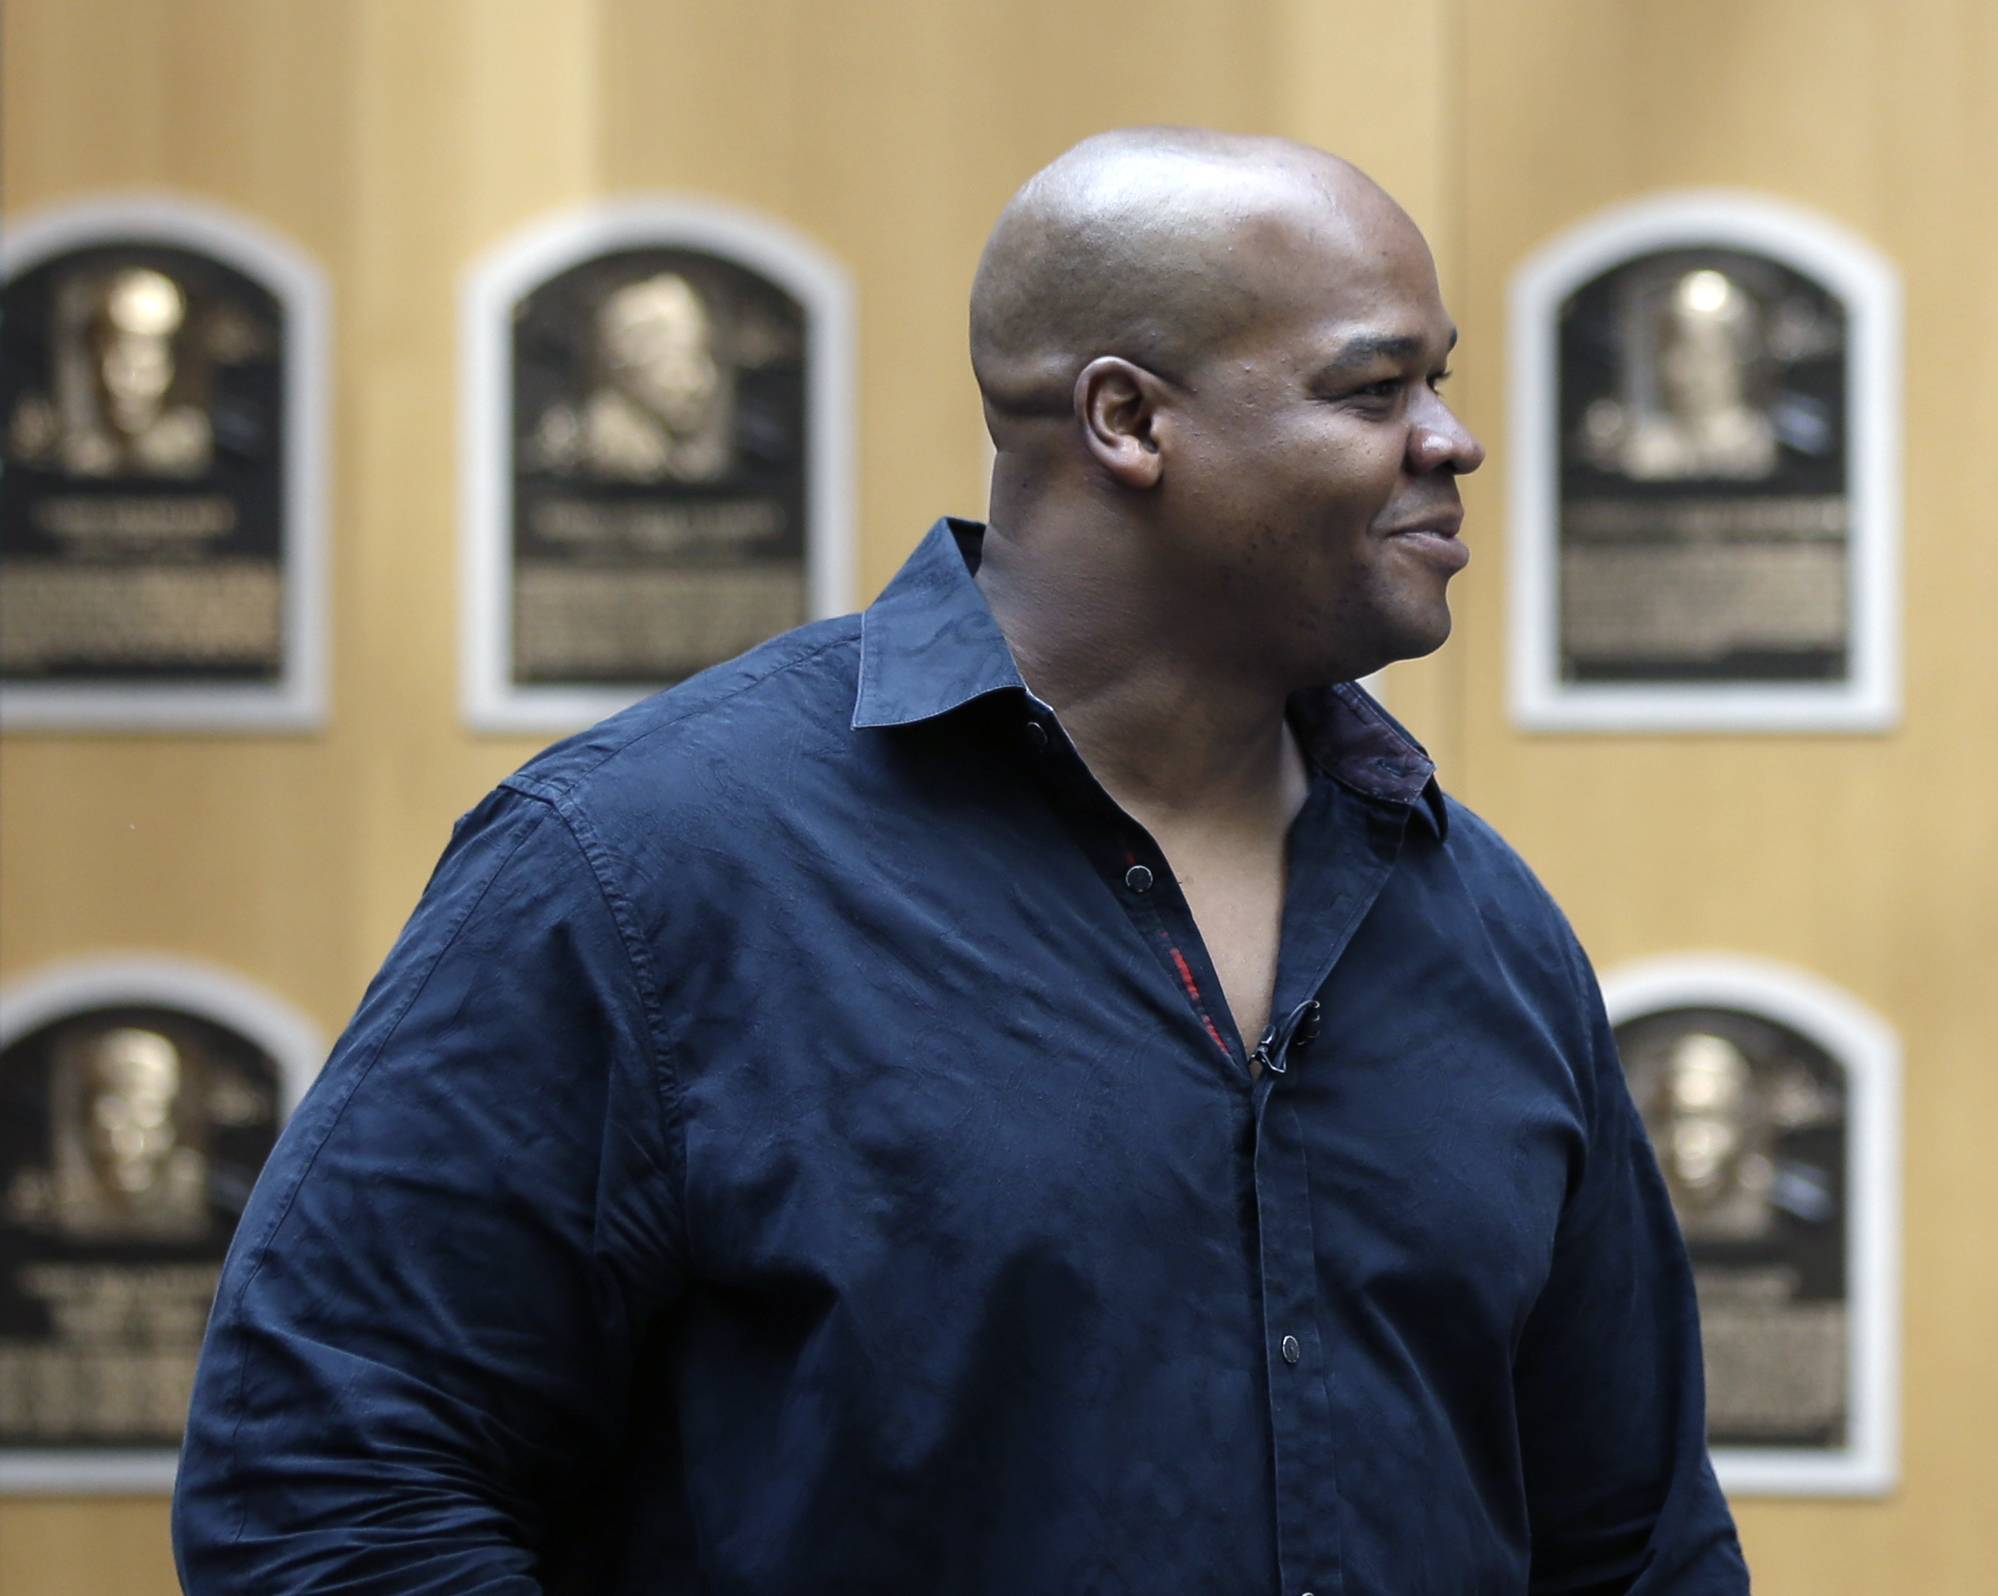 Frank Thomas walks in the Plaque Gallery on Monday at the Baseball Hall of Fame.